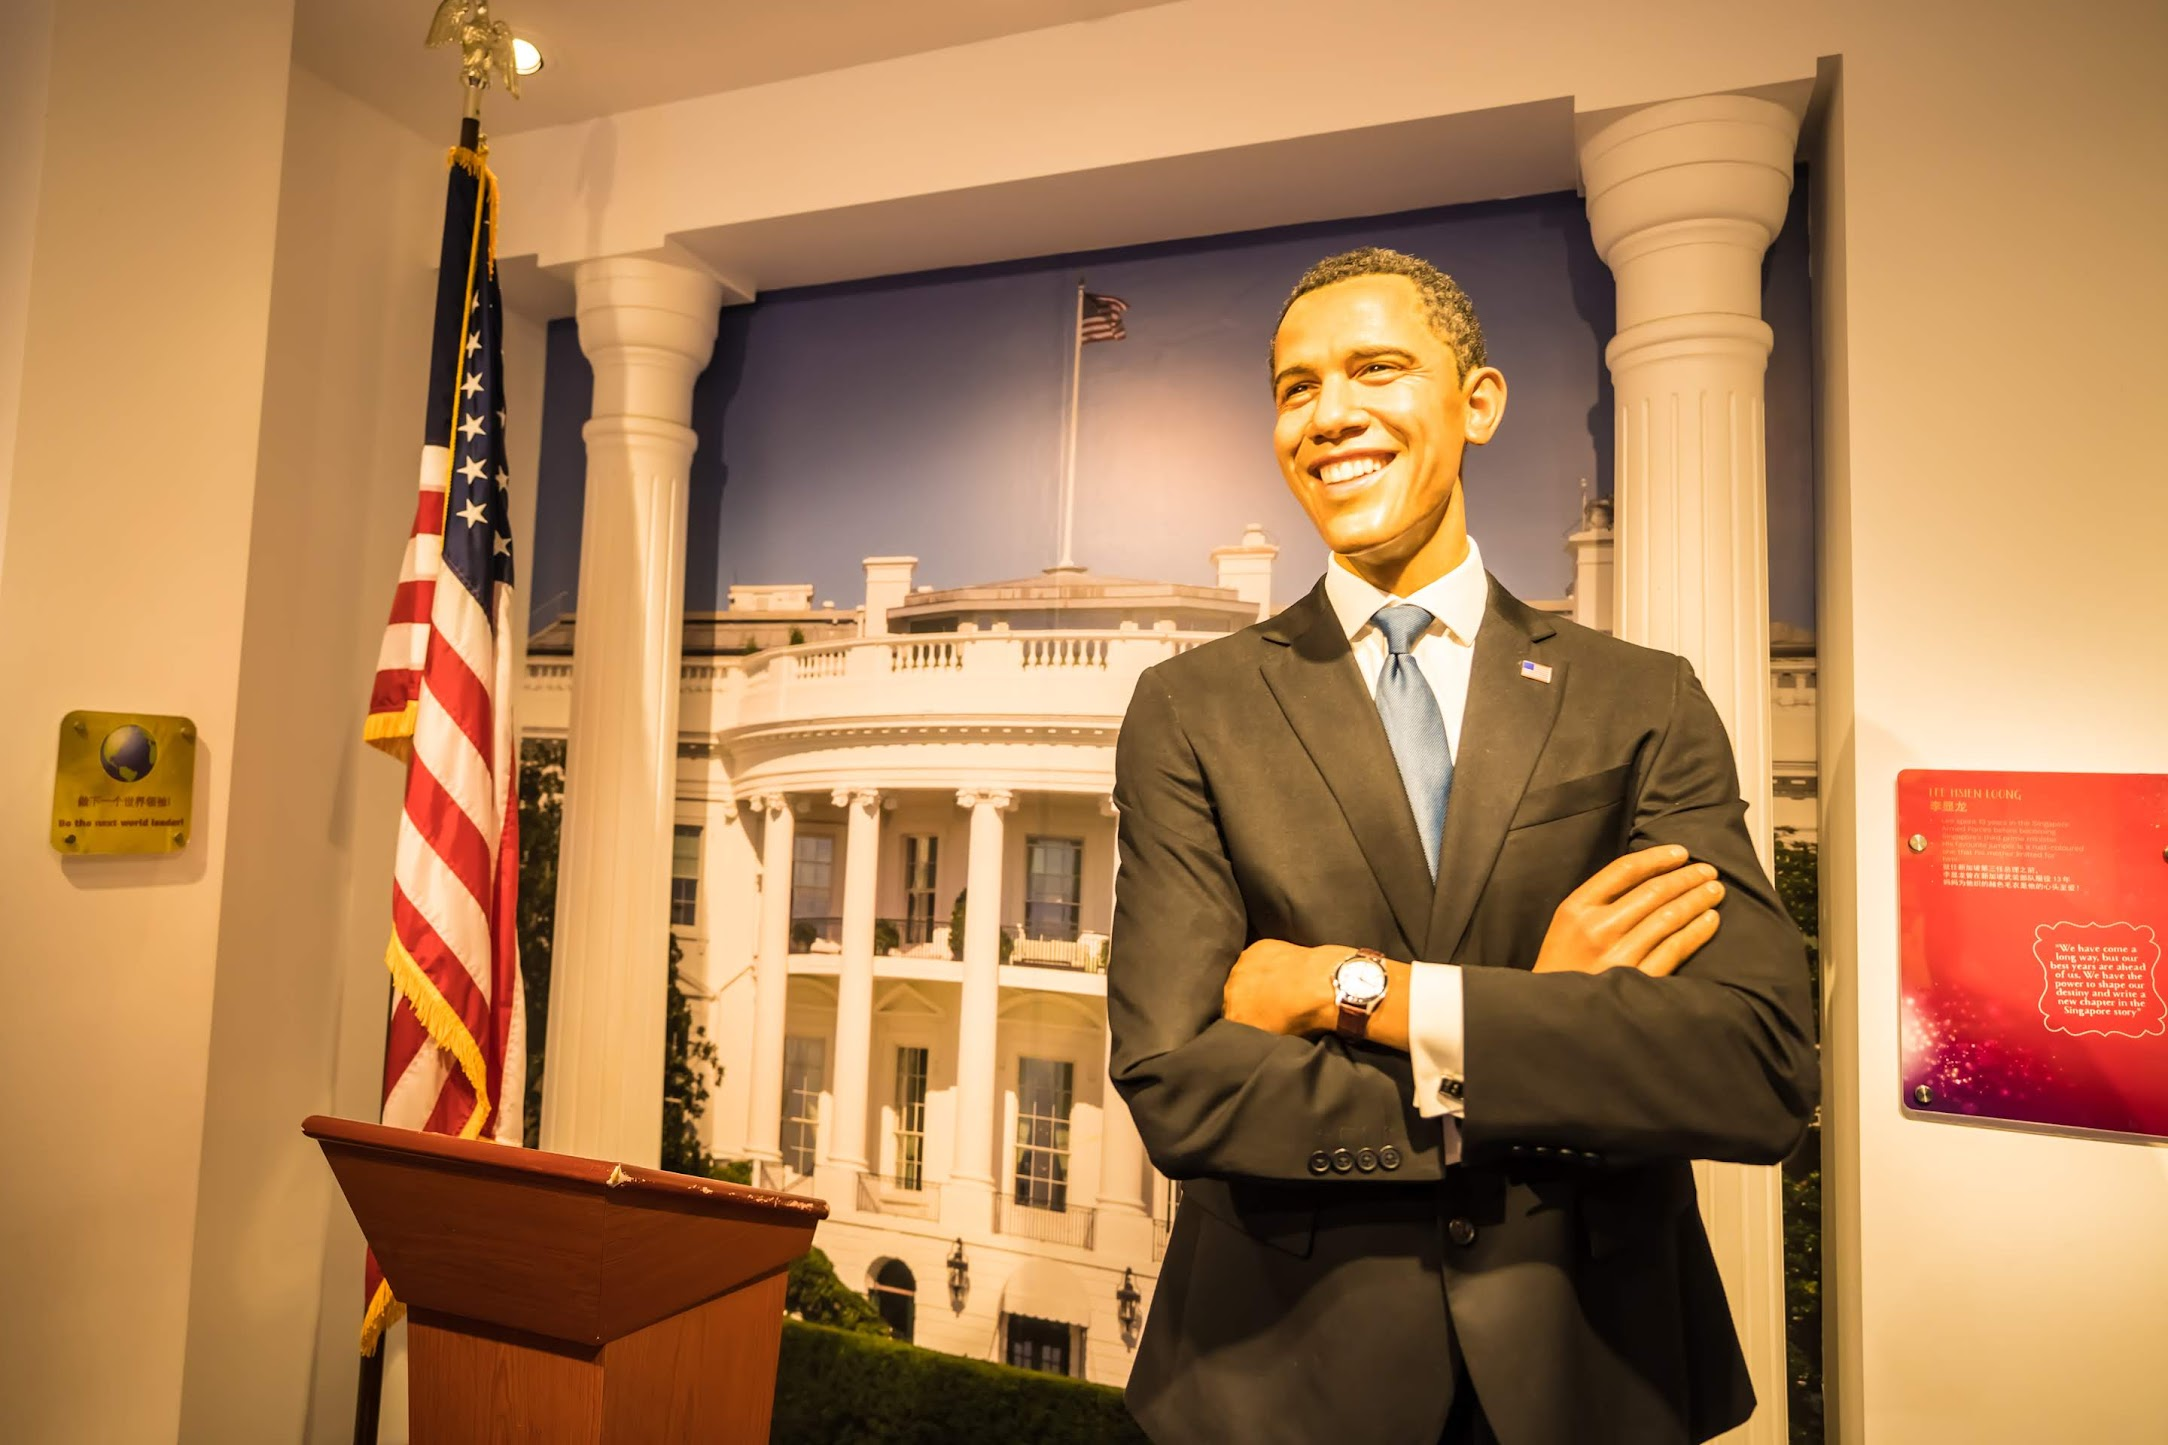 Singapore Sentosa Island Madame Tussauds Singapore Barack Obama